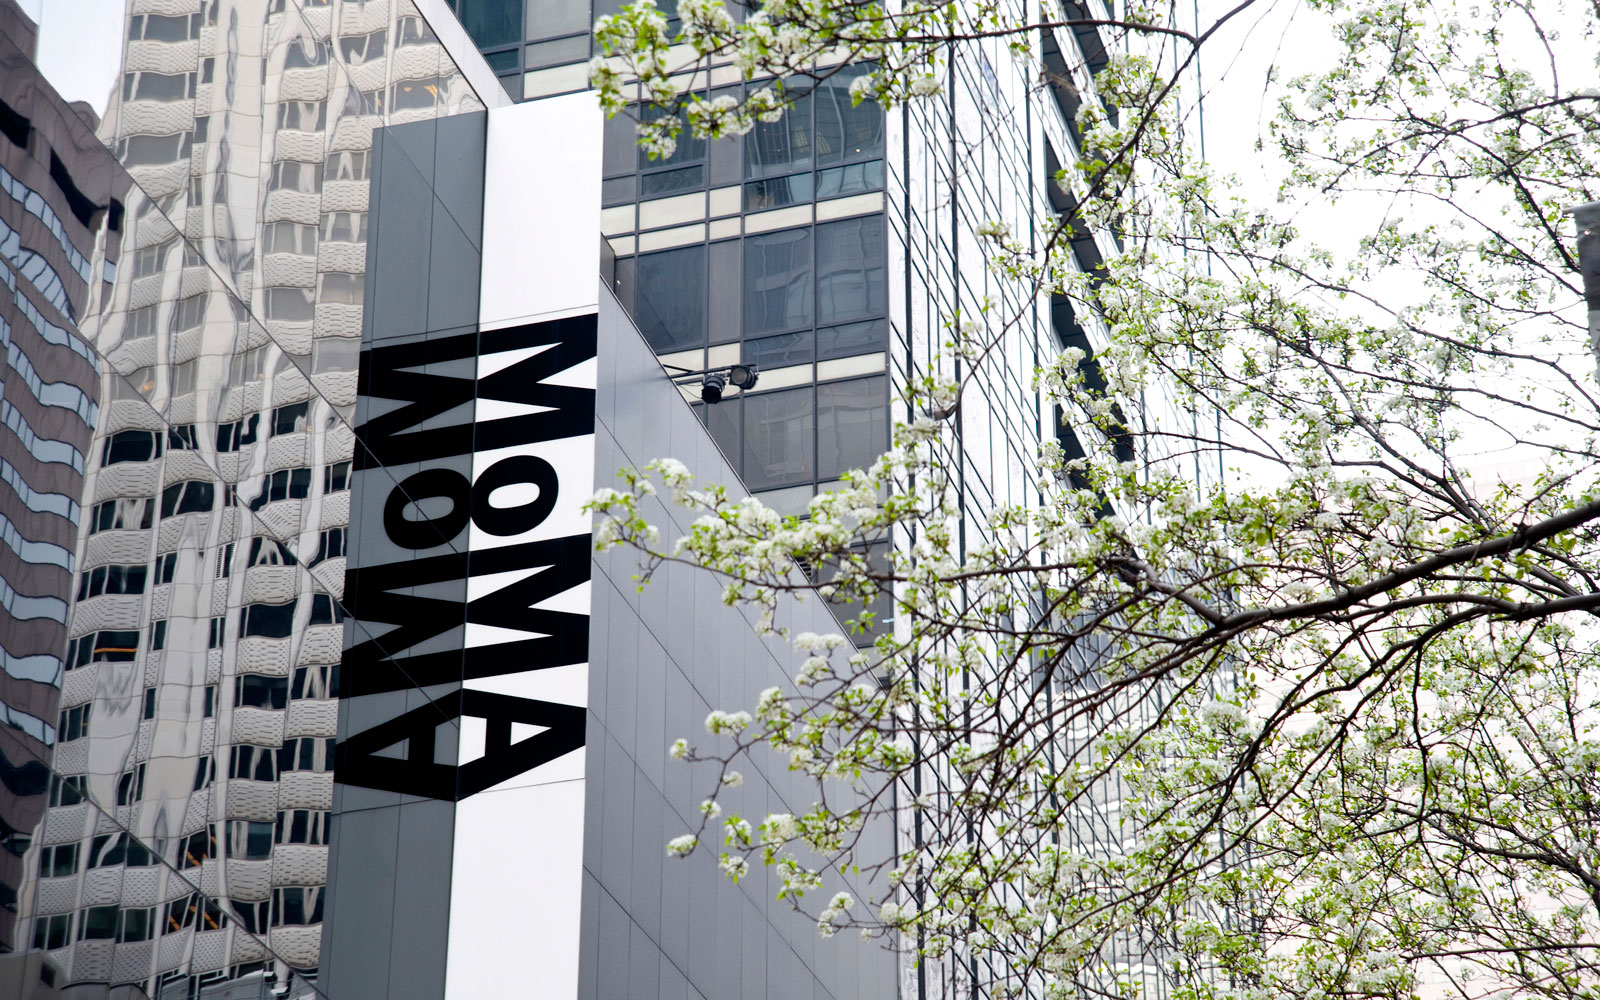 9. The Museum of Modern Art (MoMA) in New York City